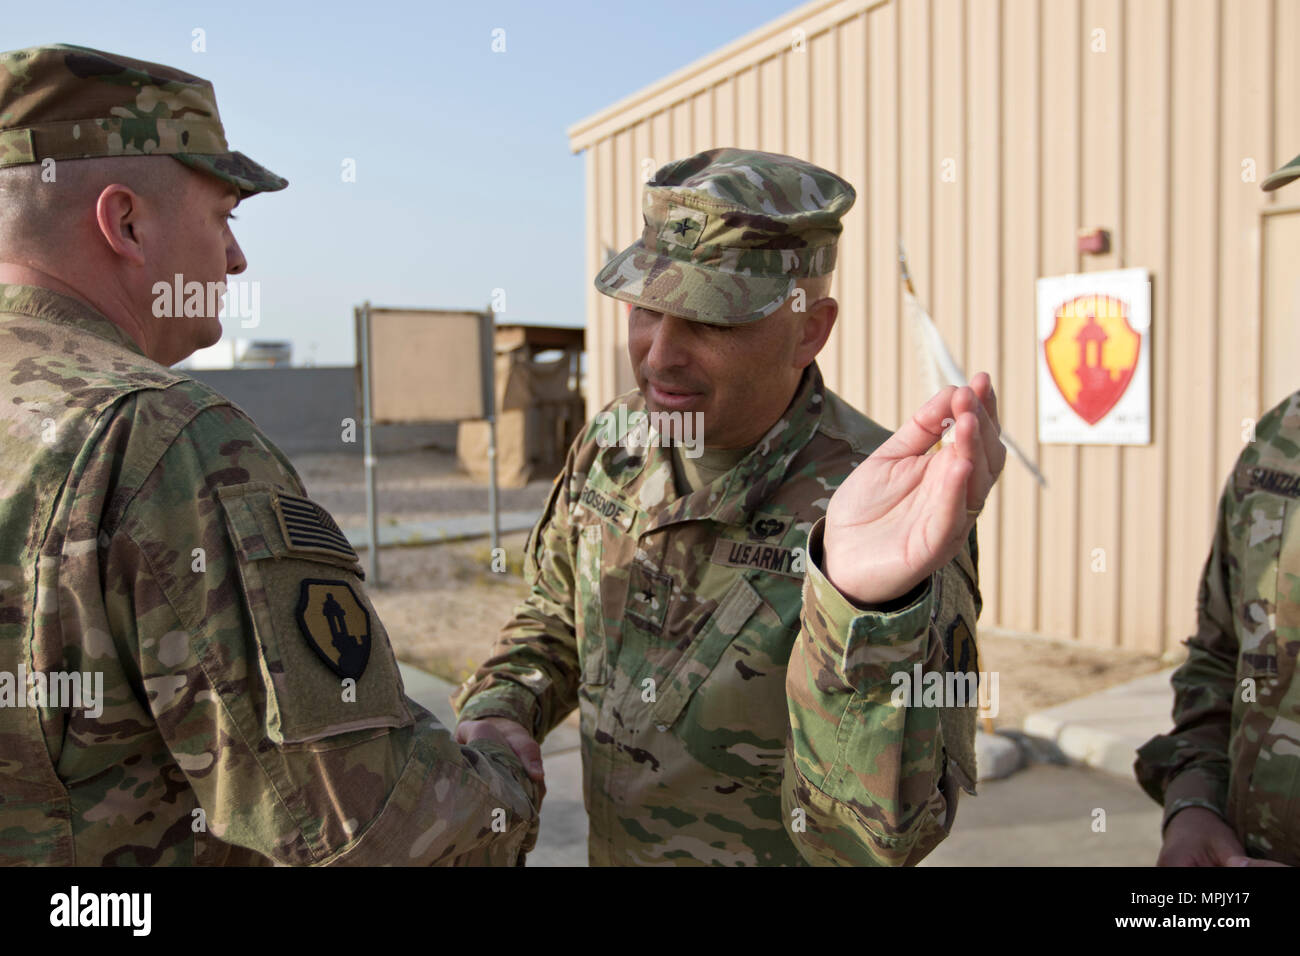 Brig. Gen. Alberto Rosende, commanding general of the 1st Mission Support Command, an Army Reserve unit based out of Fort Buchanan, Puerto Rico, slaps the Garita patch on a Soldier during a patching ceremony for the 246th Quartermaster Company (Mortuary Affairs) at Camp Arifjan, Kuwait, on Mar. 20, 2017. (U.S. Army photo by Staff Sgt. Dalton Smith) - Stock Image